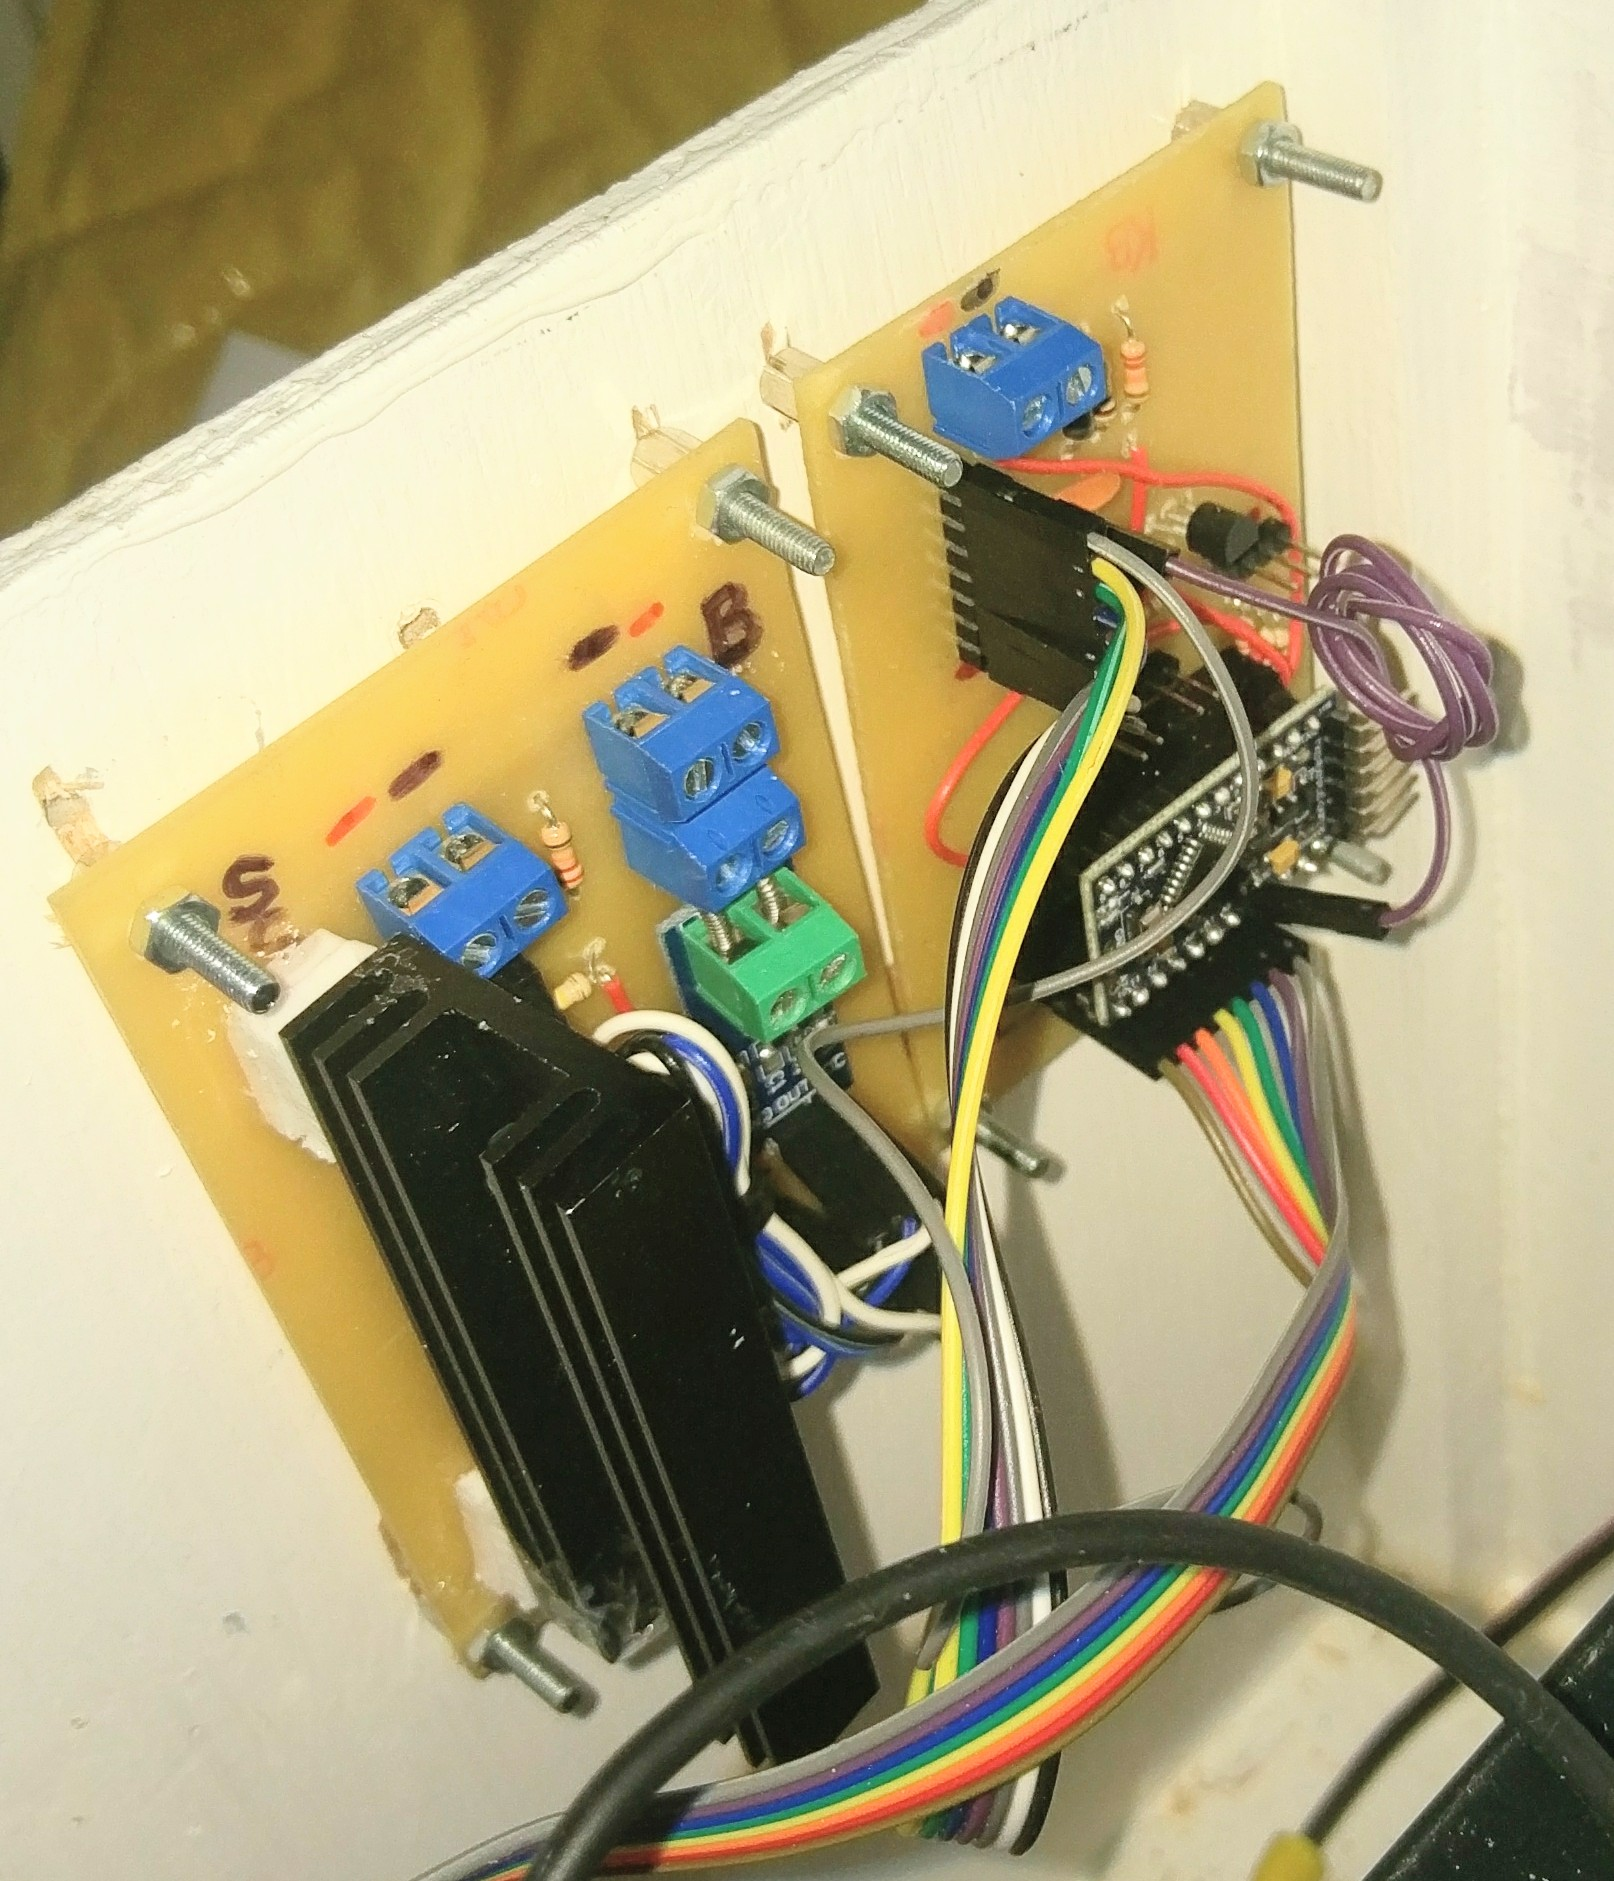 Andrew Whymans Blog Just Another Wordpress Site Usb Power Supply With Lm2575 Hqewnet Flaws In The Design